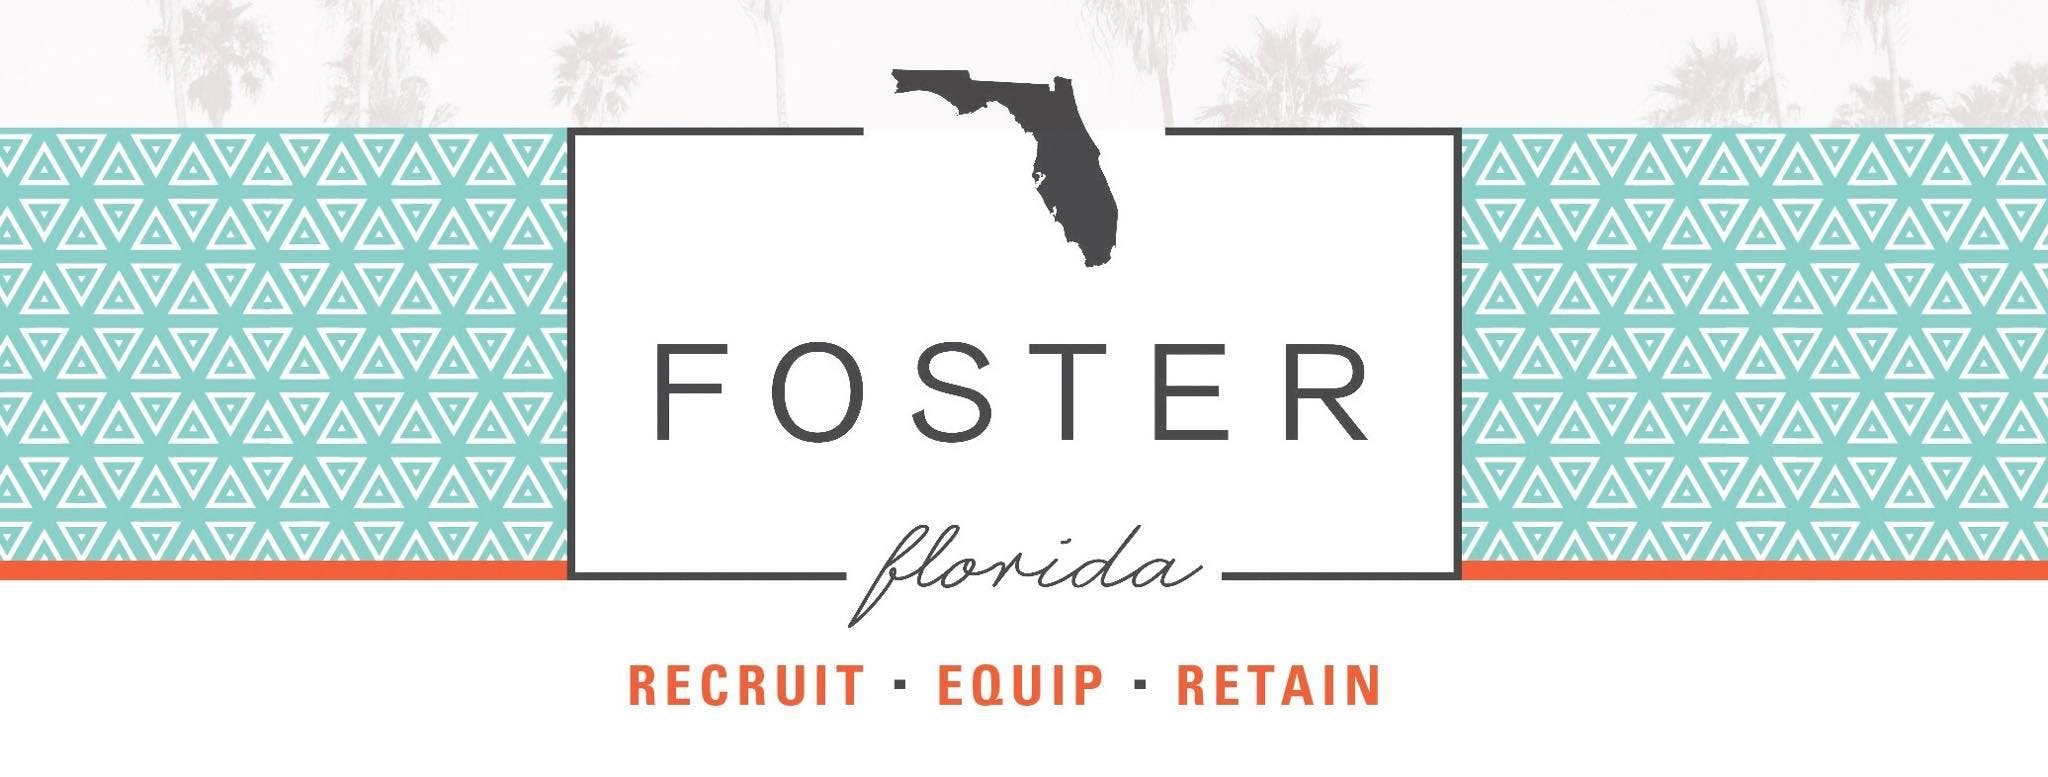 Foster Florida Parents Day Out